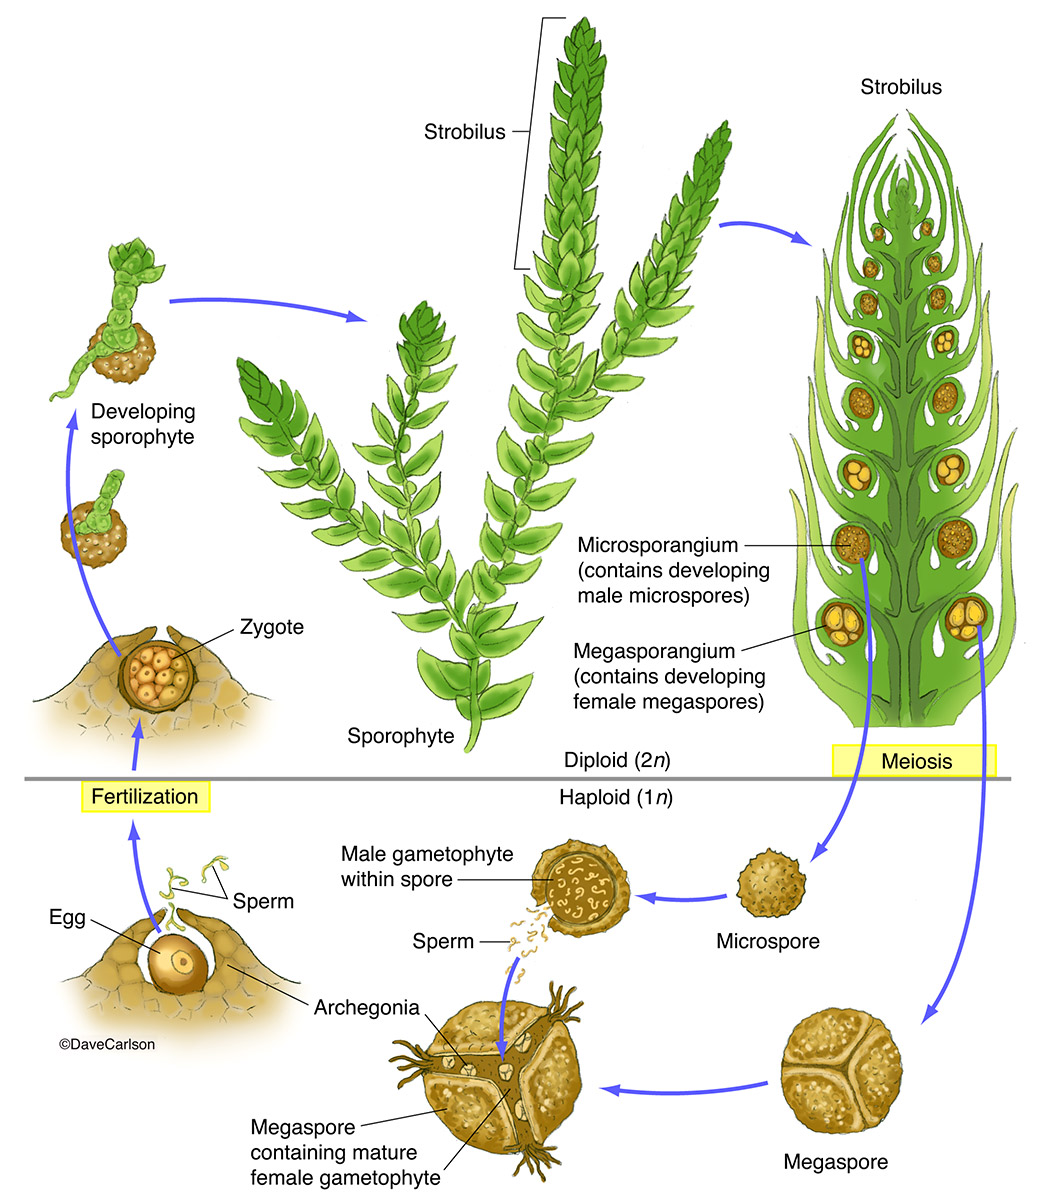 illustration, life cycle, Selaginella, genus of lycophytes, spike mosses, photo